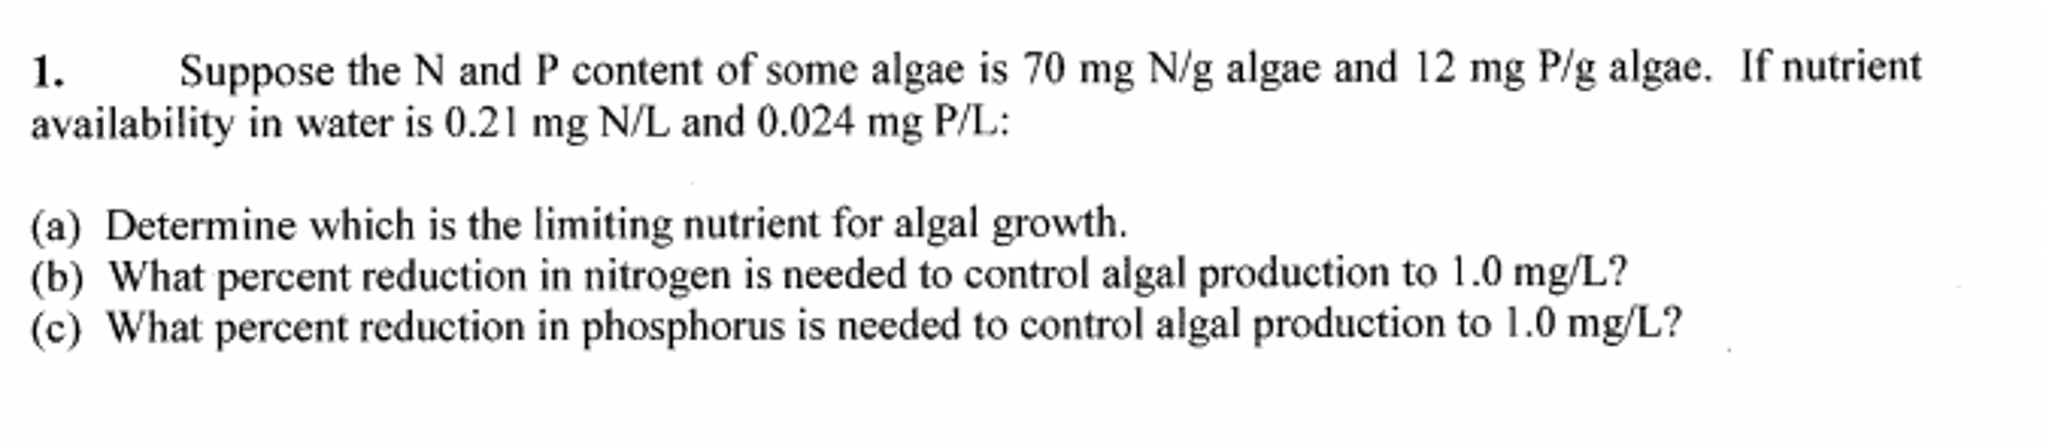 Chemistry archive november 08 2016 chegg suppose the n and p content of some algae is 70 mg altavistaventures Choice Image